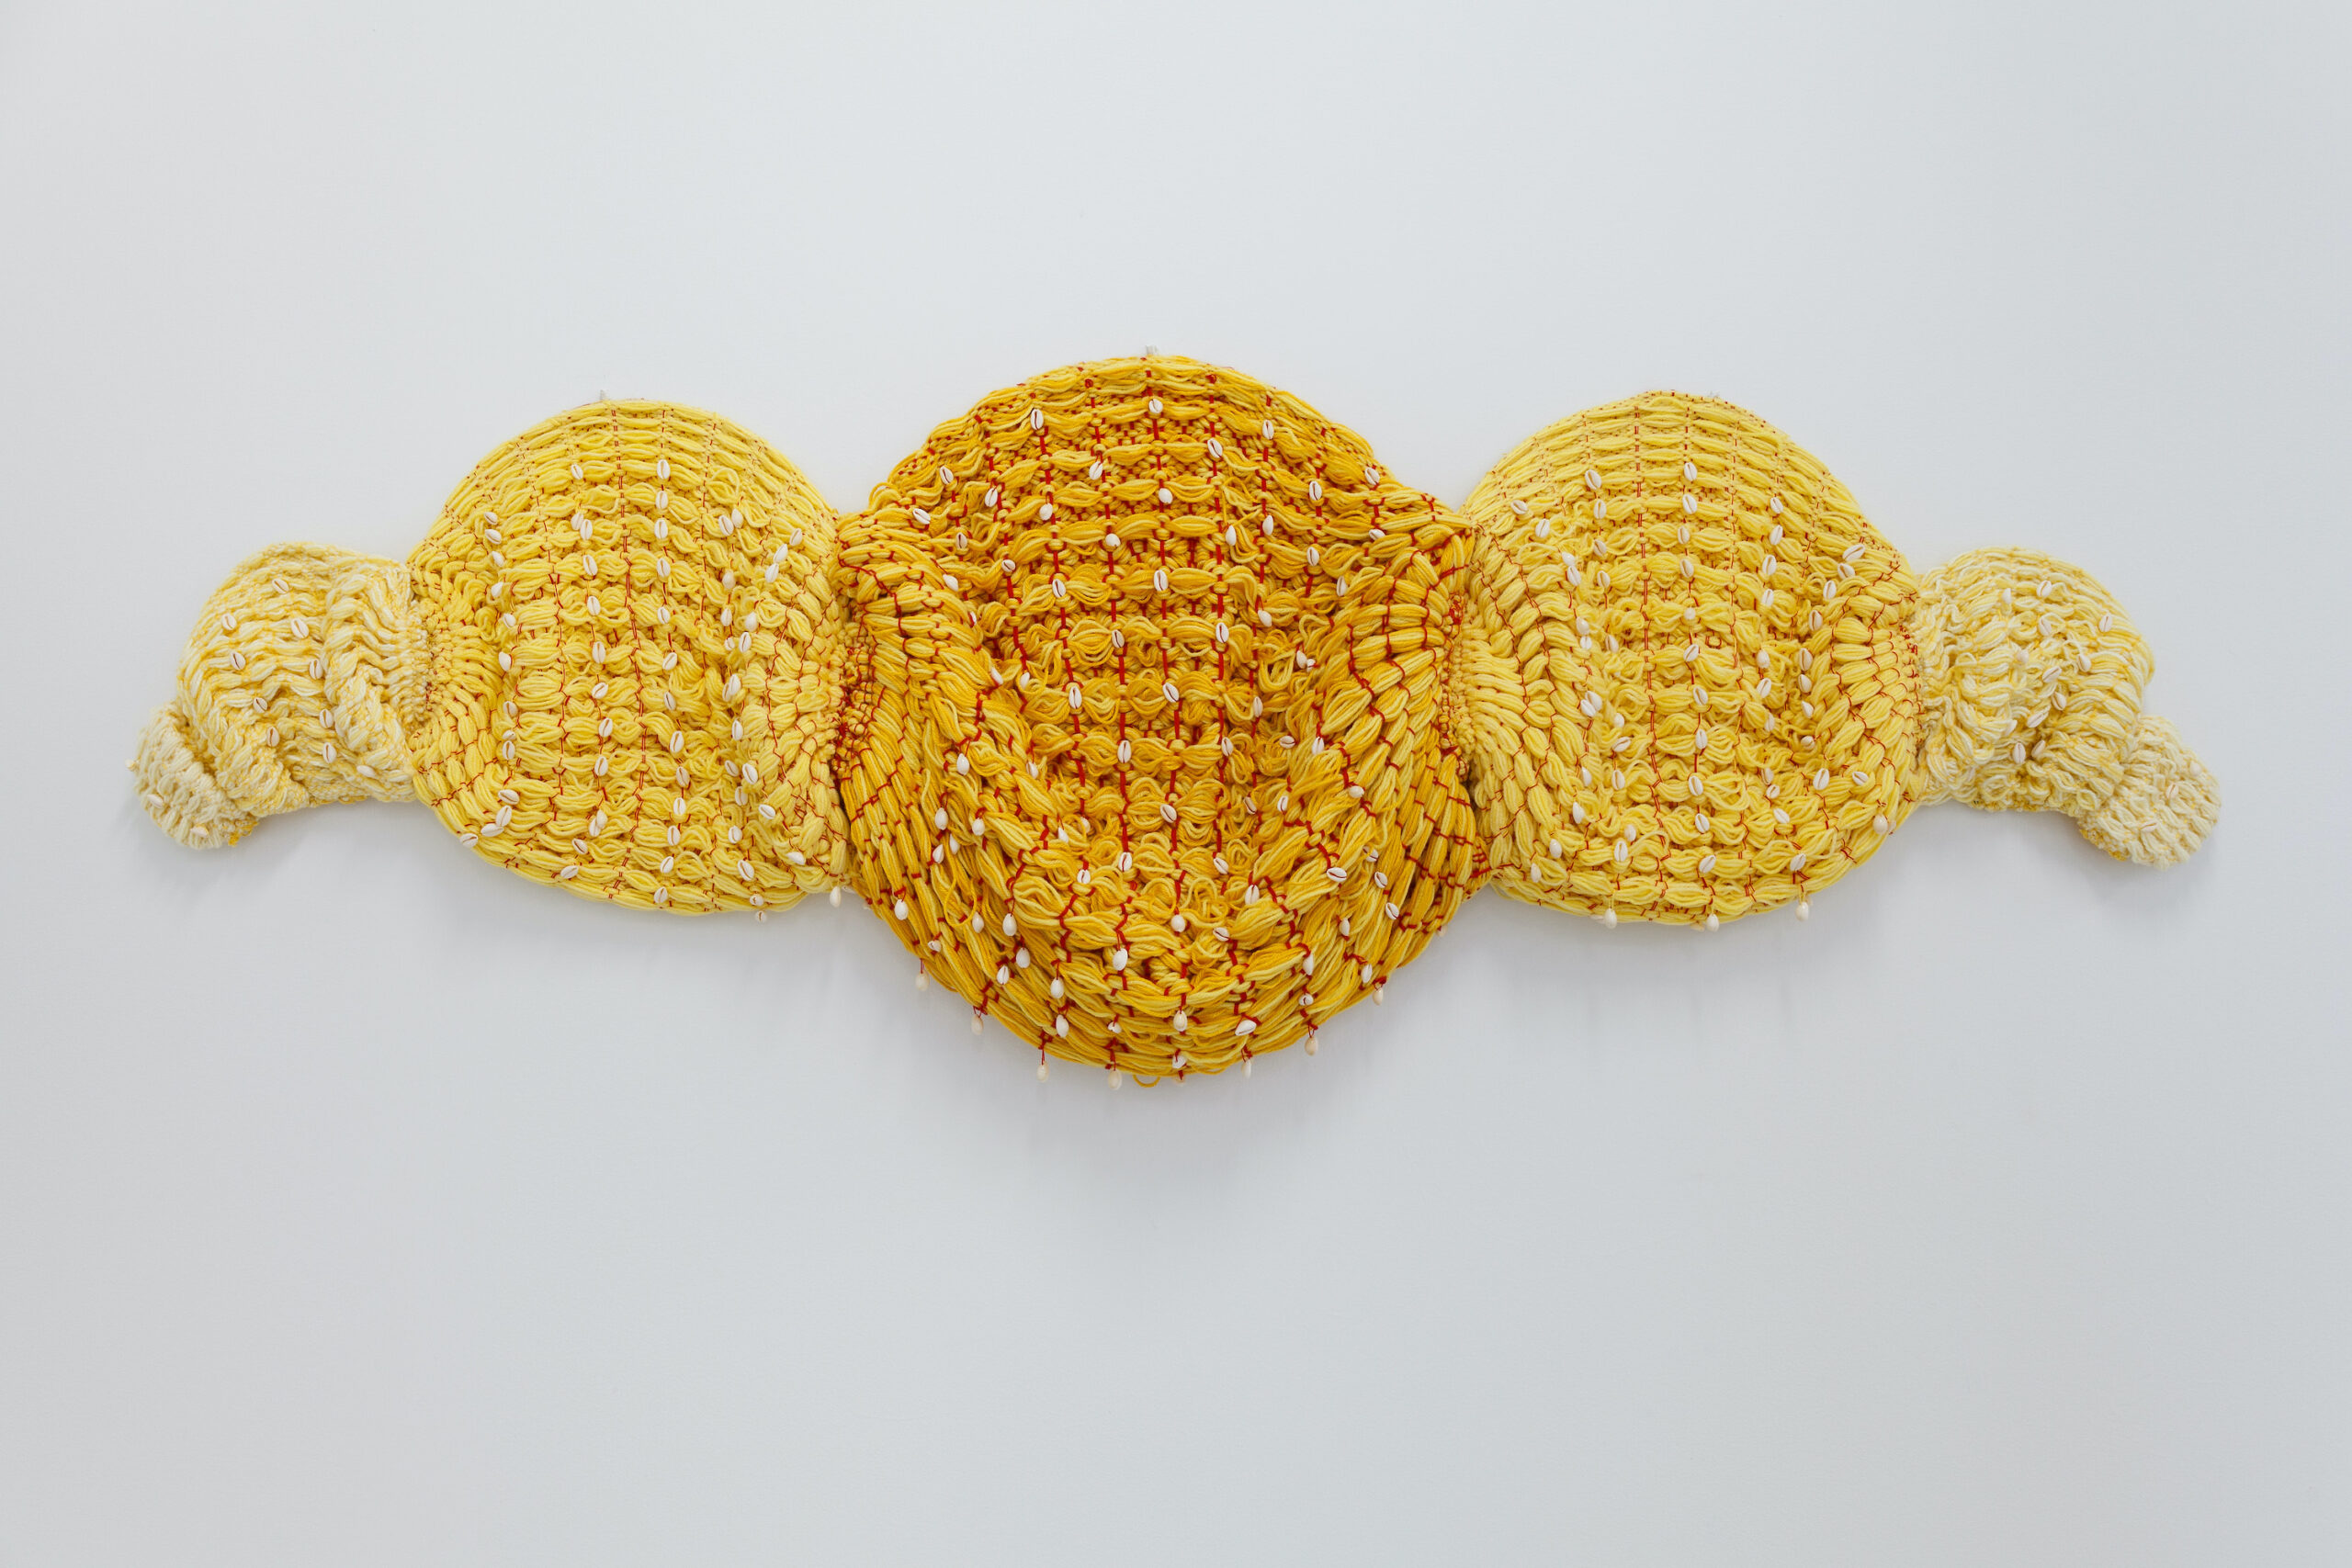 Katrina Coombs, Armour of the Other, 2020, Hand woven mixed fibers and cowrie shells, Emerson Dorsch, Miami FL